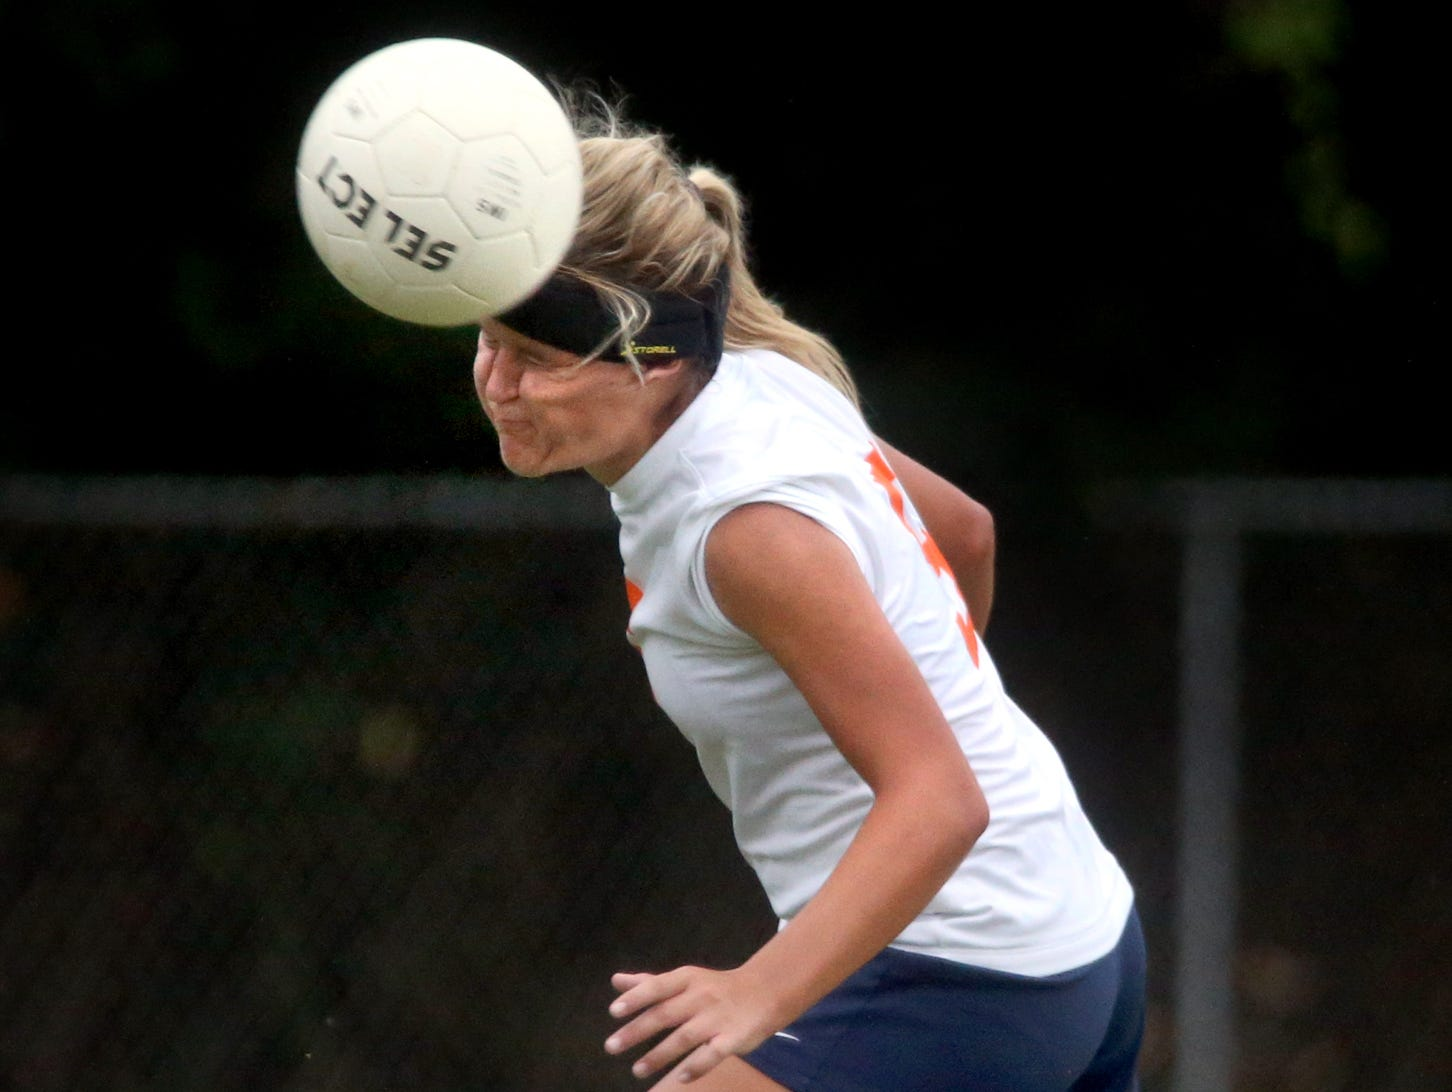 Blackman's Kenzi Vetter heads the ball during a game against Smyrna. The Blackman soccer team wears Storelli head bands to help reduce the risk of concussions.